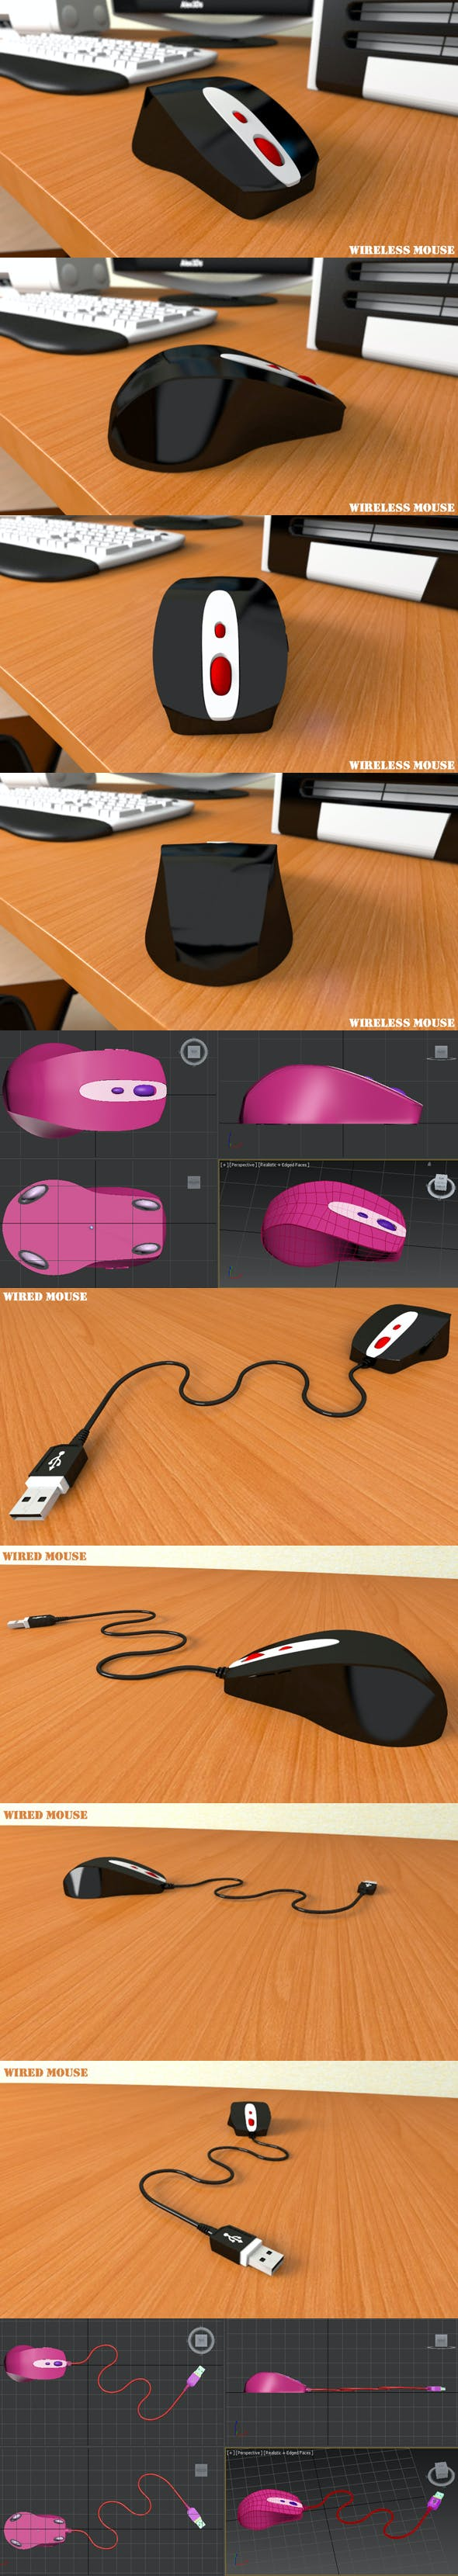 Wired Mouse and Wireless Mouse - 3DOcean Item for Sale